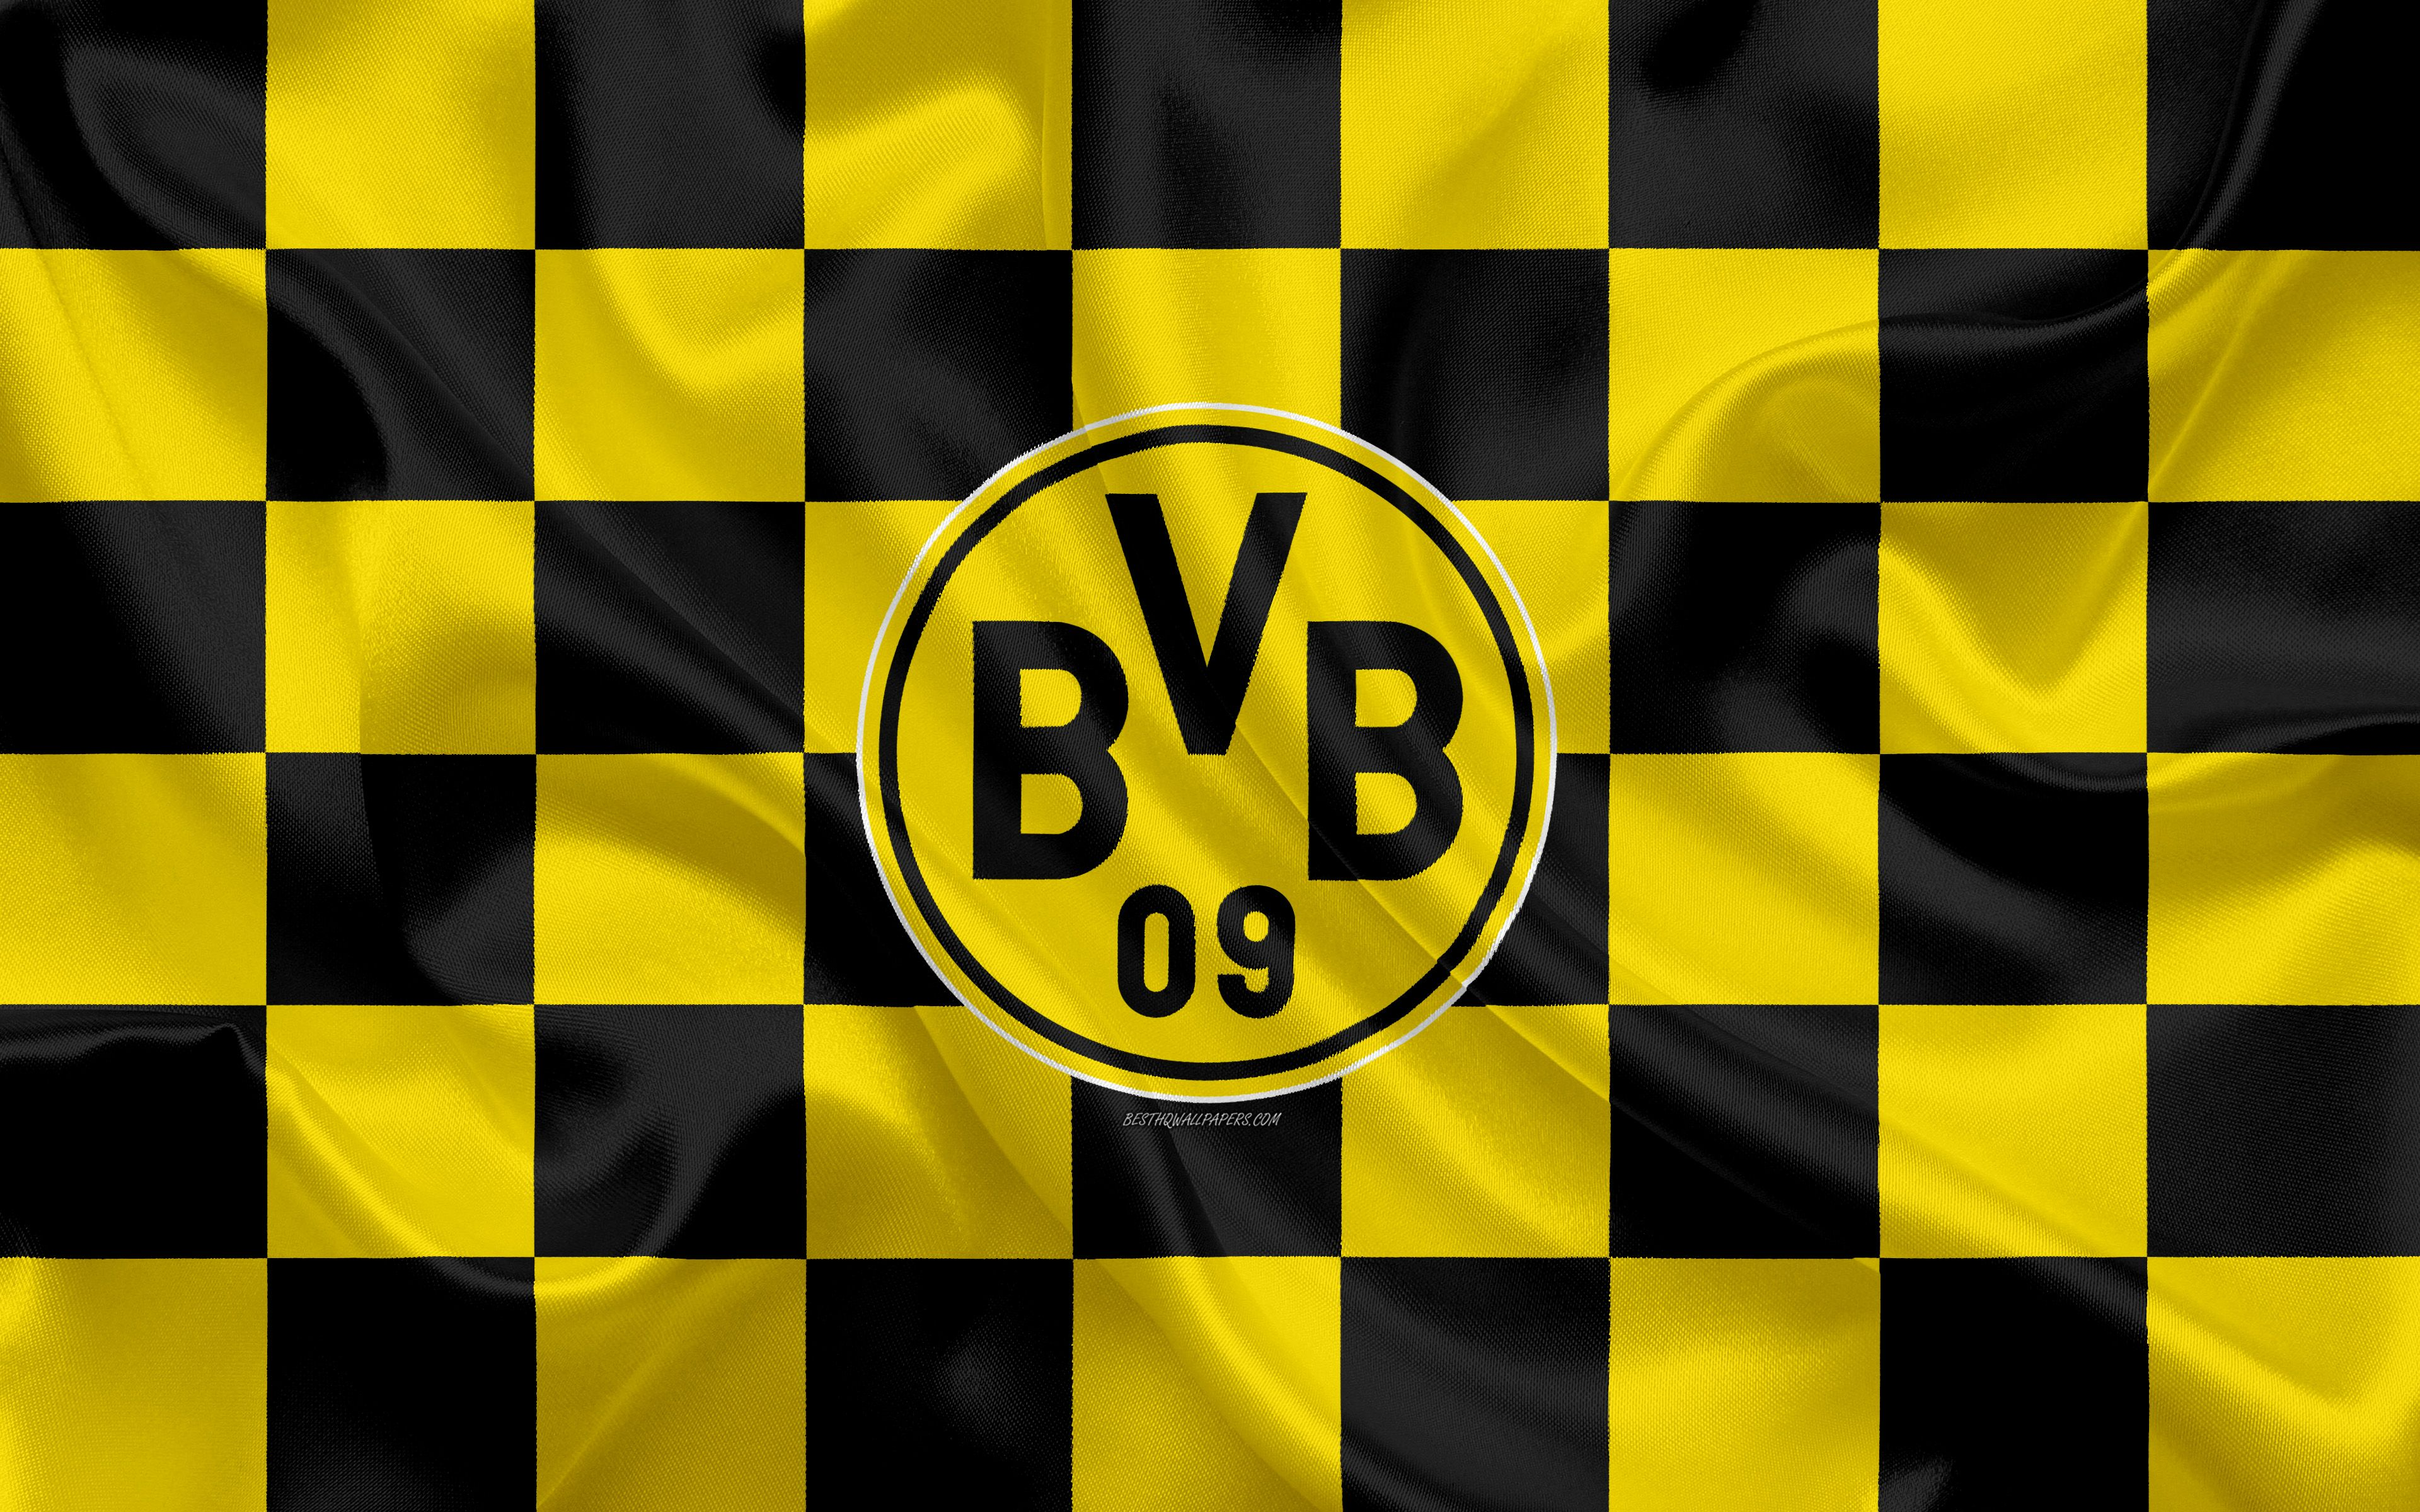 Borussia Dortmund Bvb 4k Logo Creative Art Yellow Black Checkered Flag German Football Club Bundesliga Borussia Dortmund Dortmund German Football Clubs